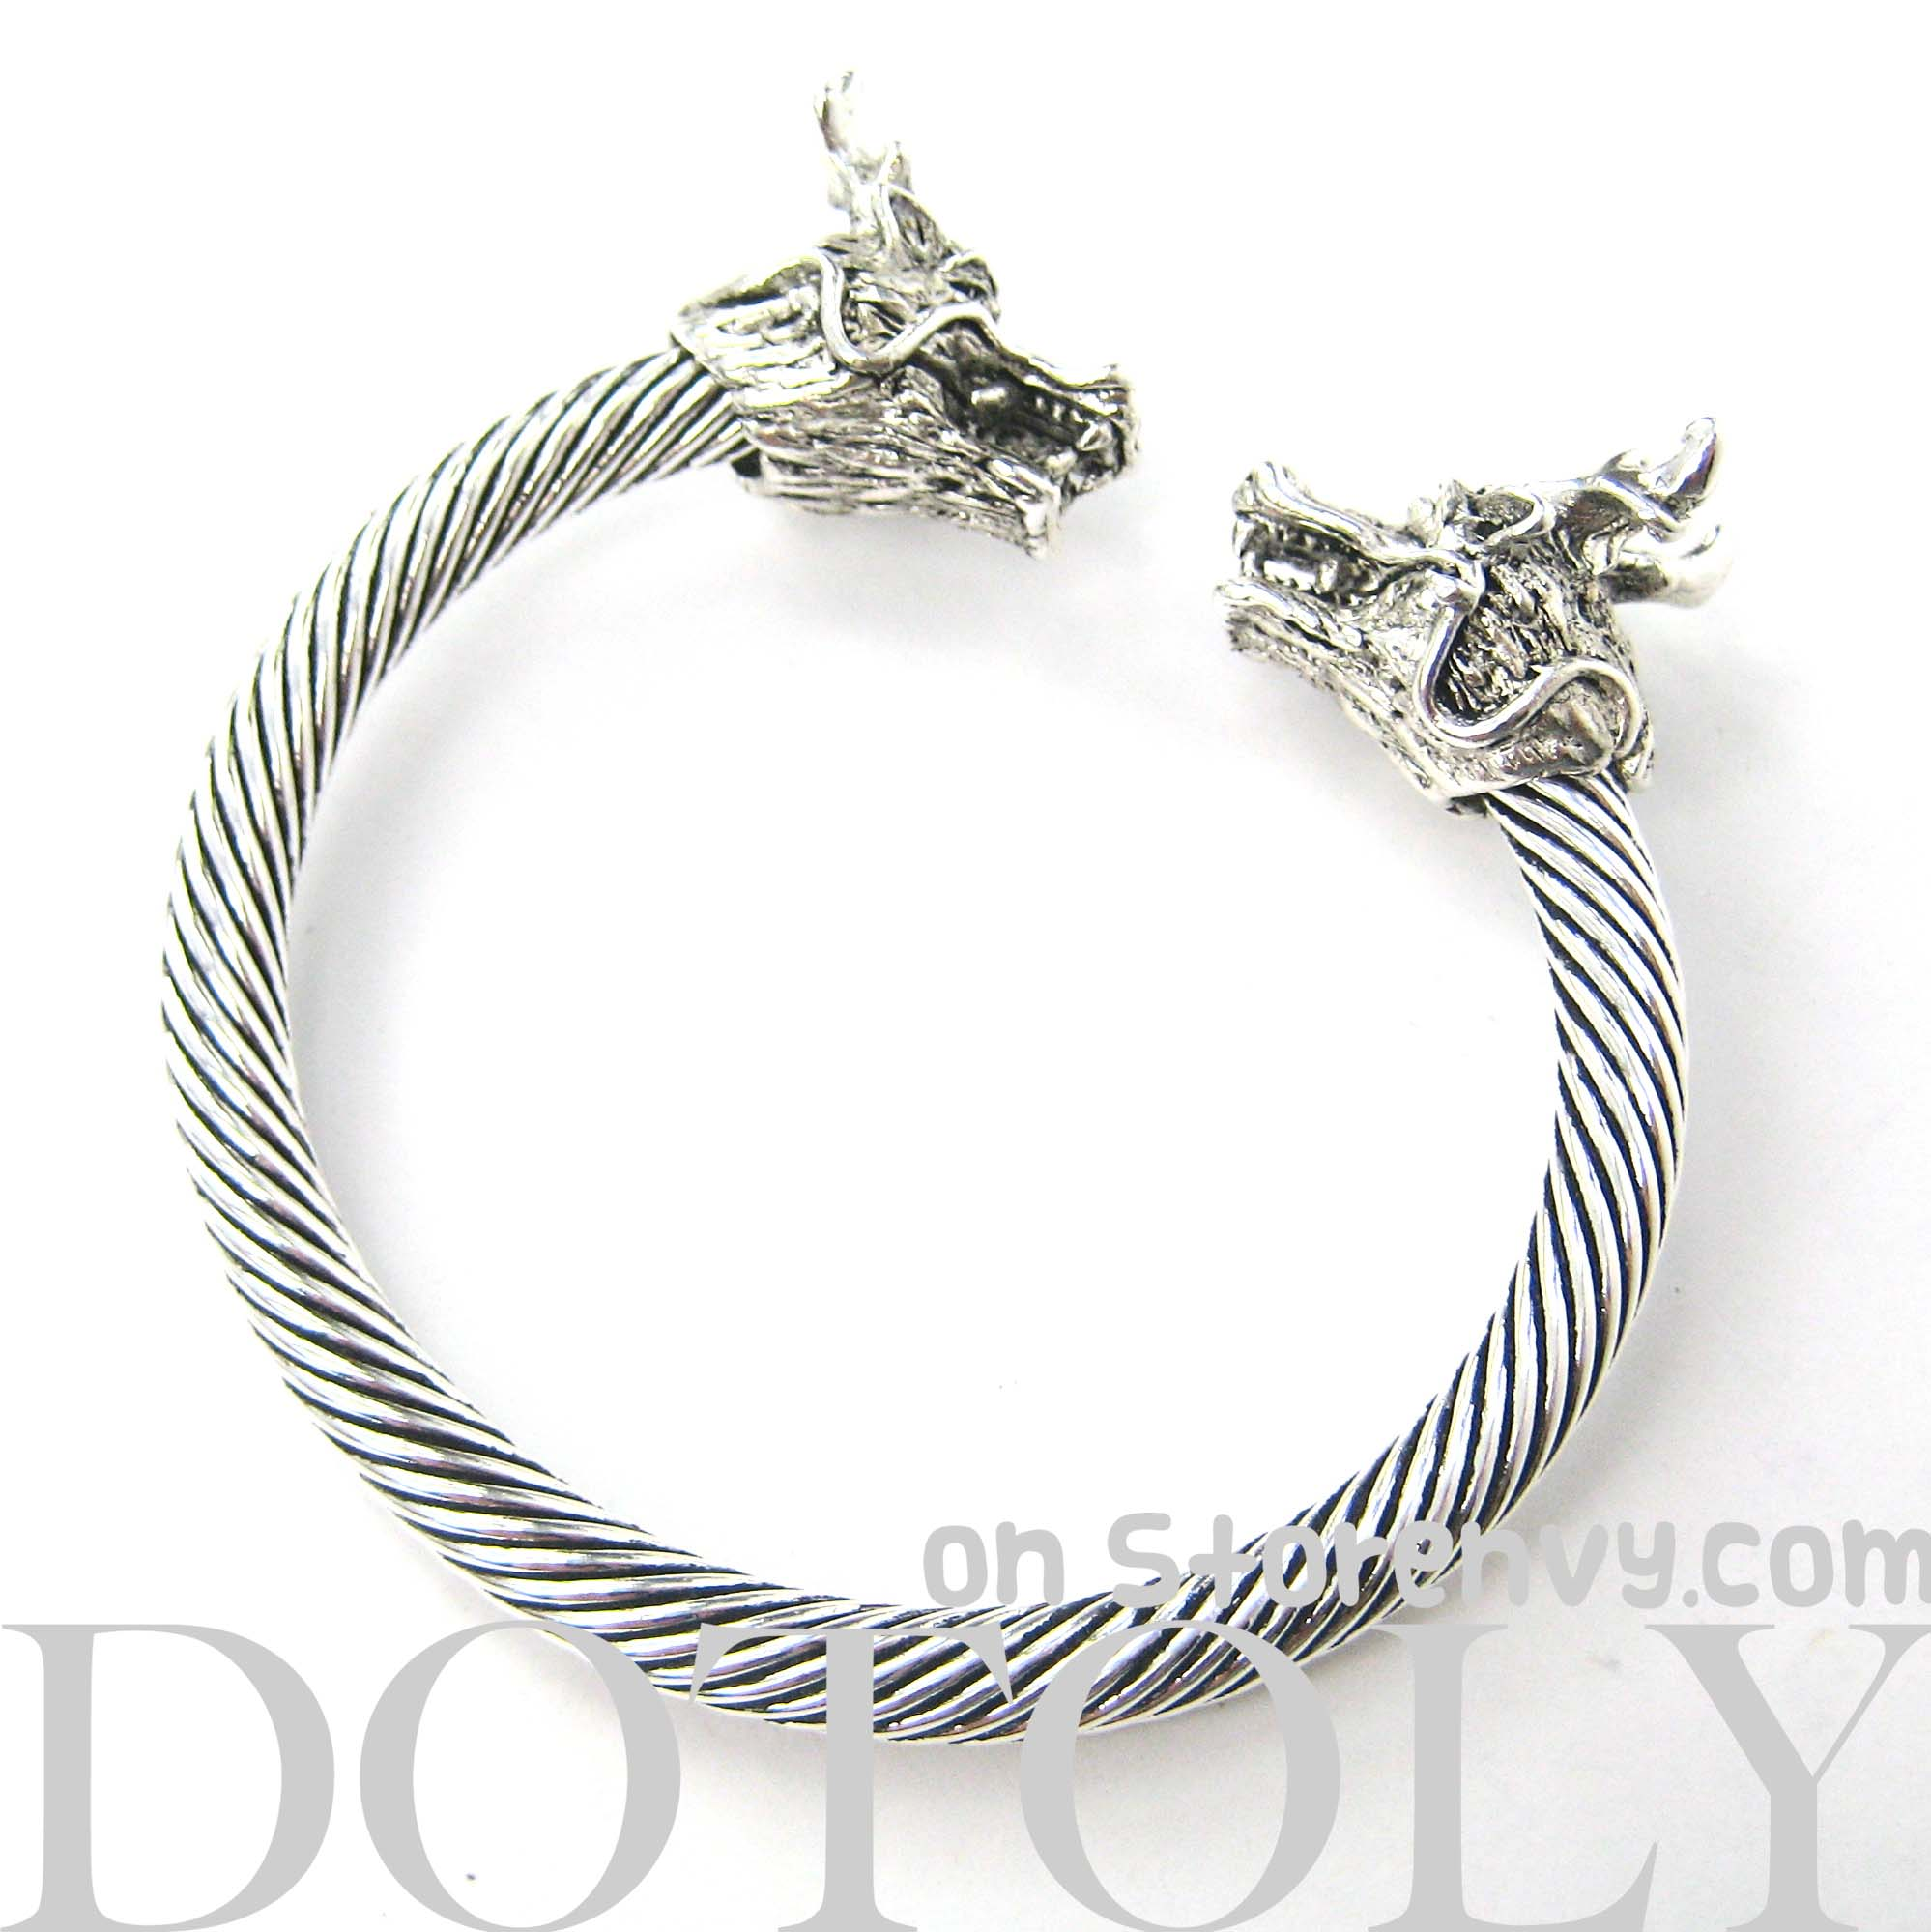 dragon-animal-bangle-bracelet-in-silver-animal-jewelry